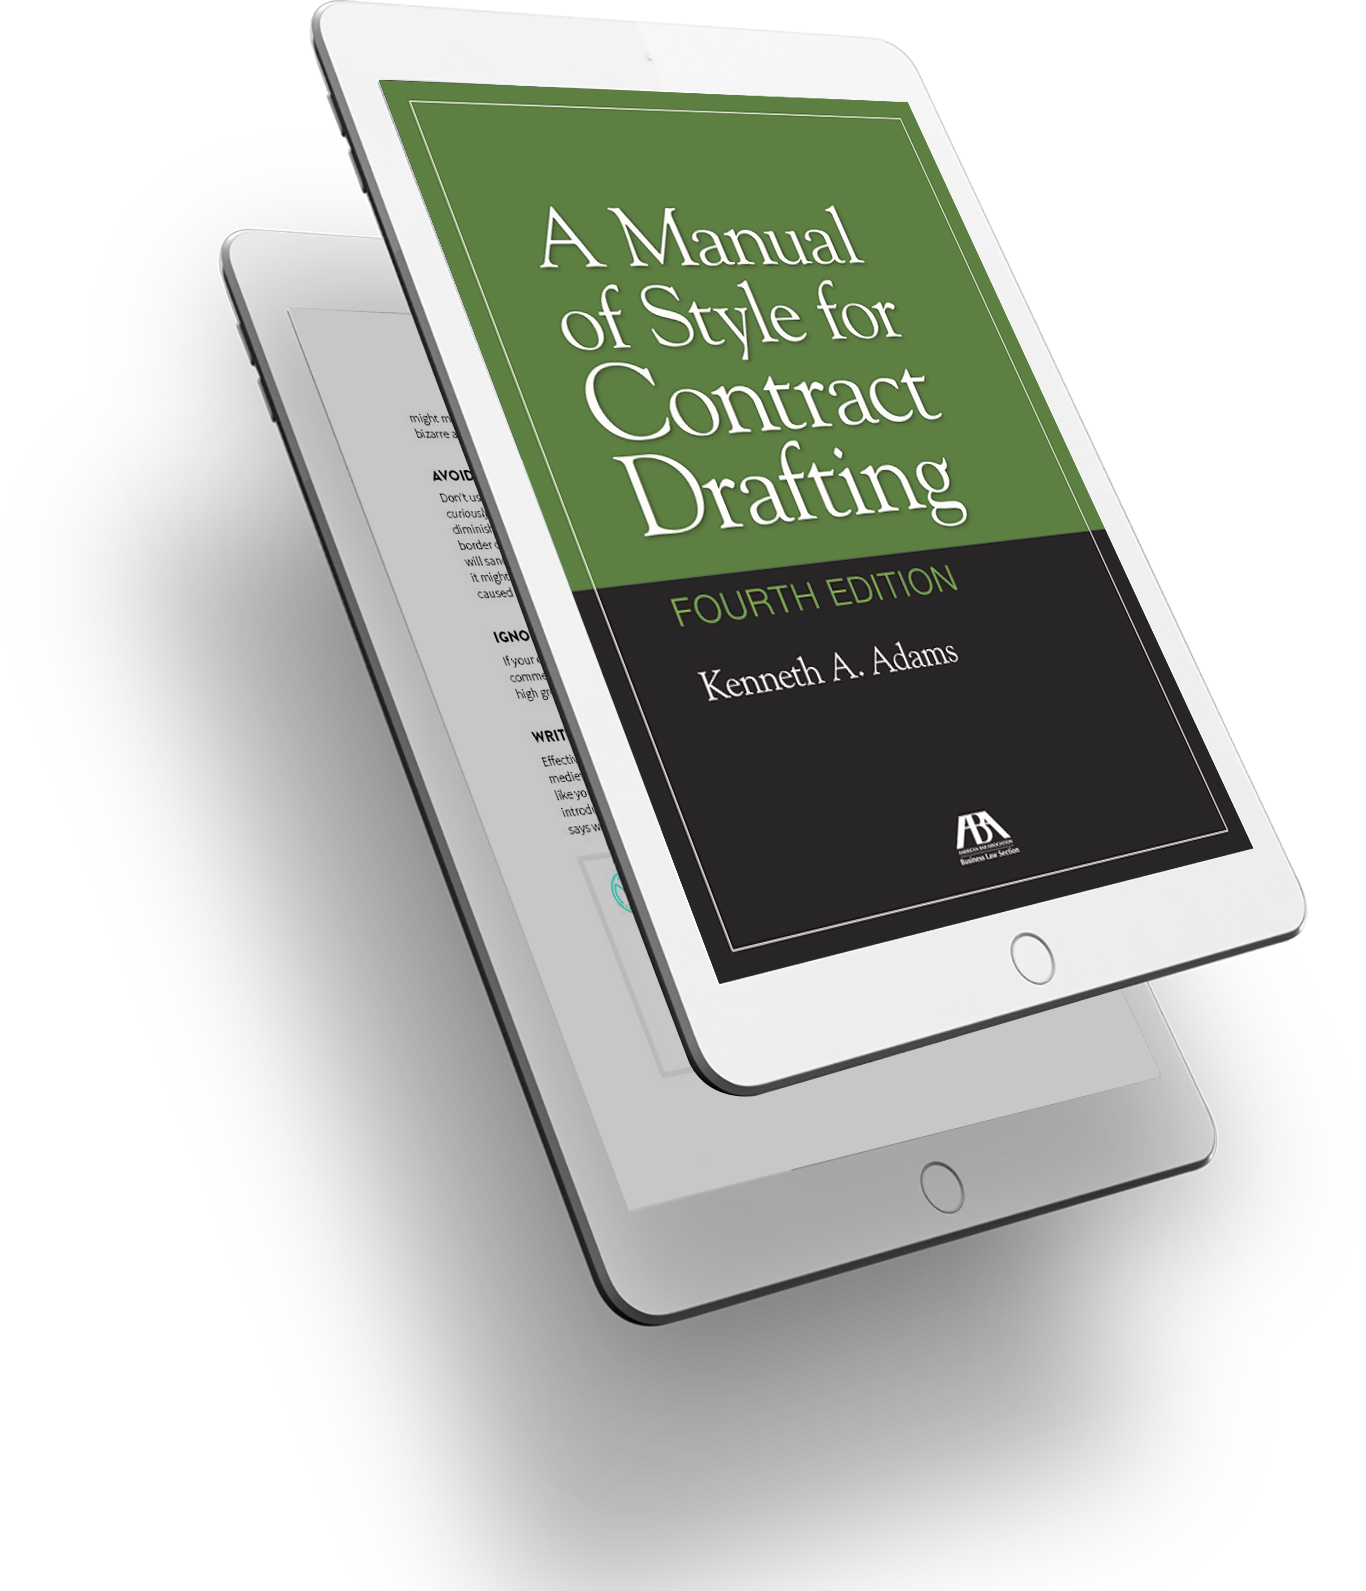 Manual of Style for Contract Drafting Cover-3D